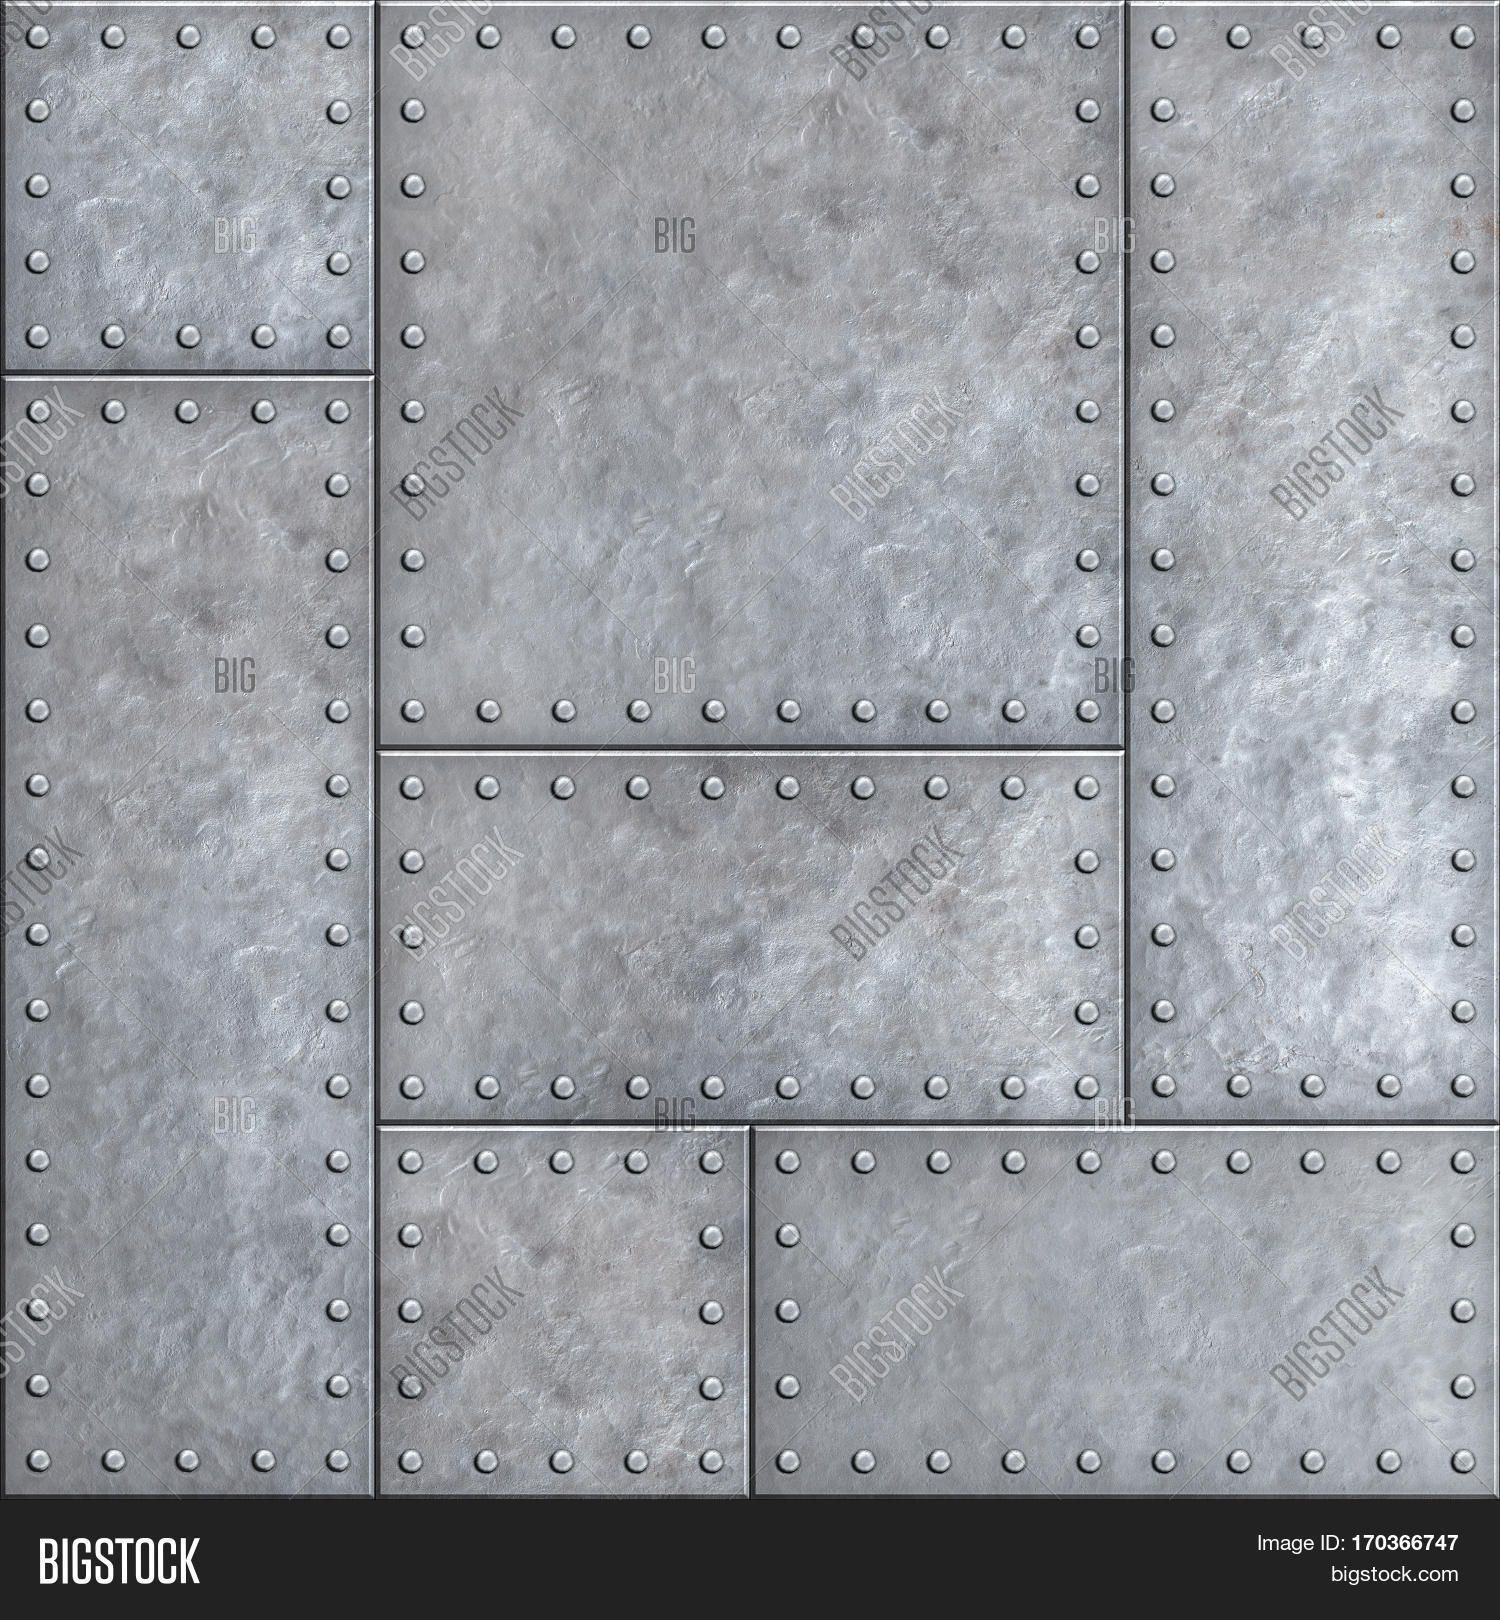 Old Metal Plates With Rivets Seamless Background Or Texture Metal Texture Material Textures Steel Textures